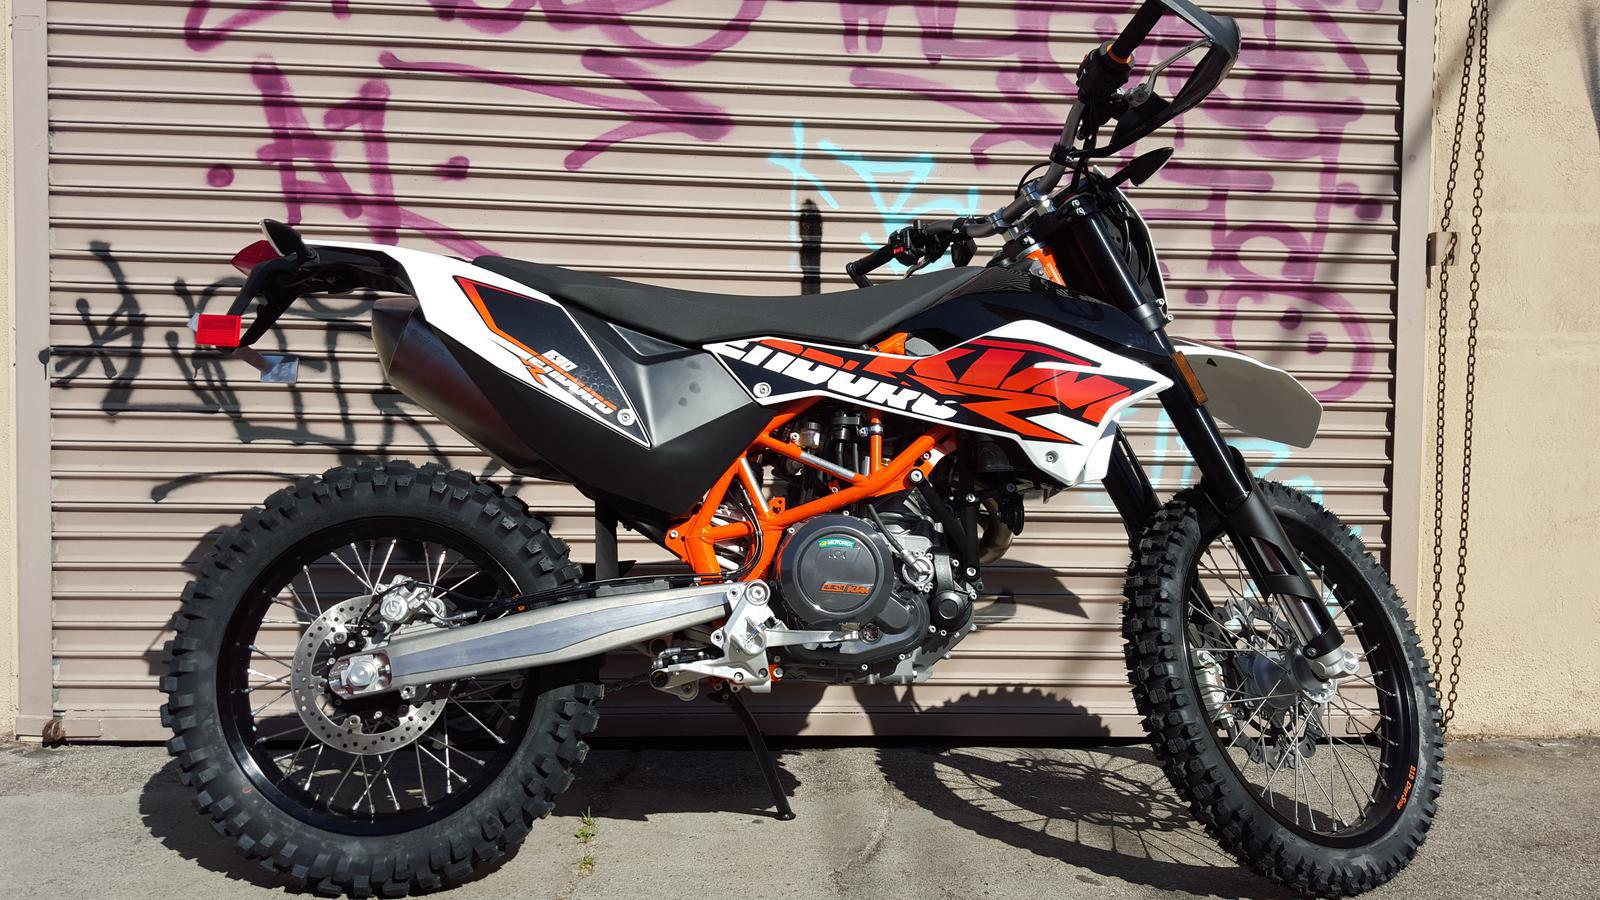 2017 ktm 690 enduro r for sale in los angeles, ca | beverly hills